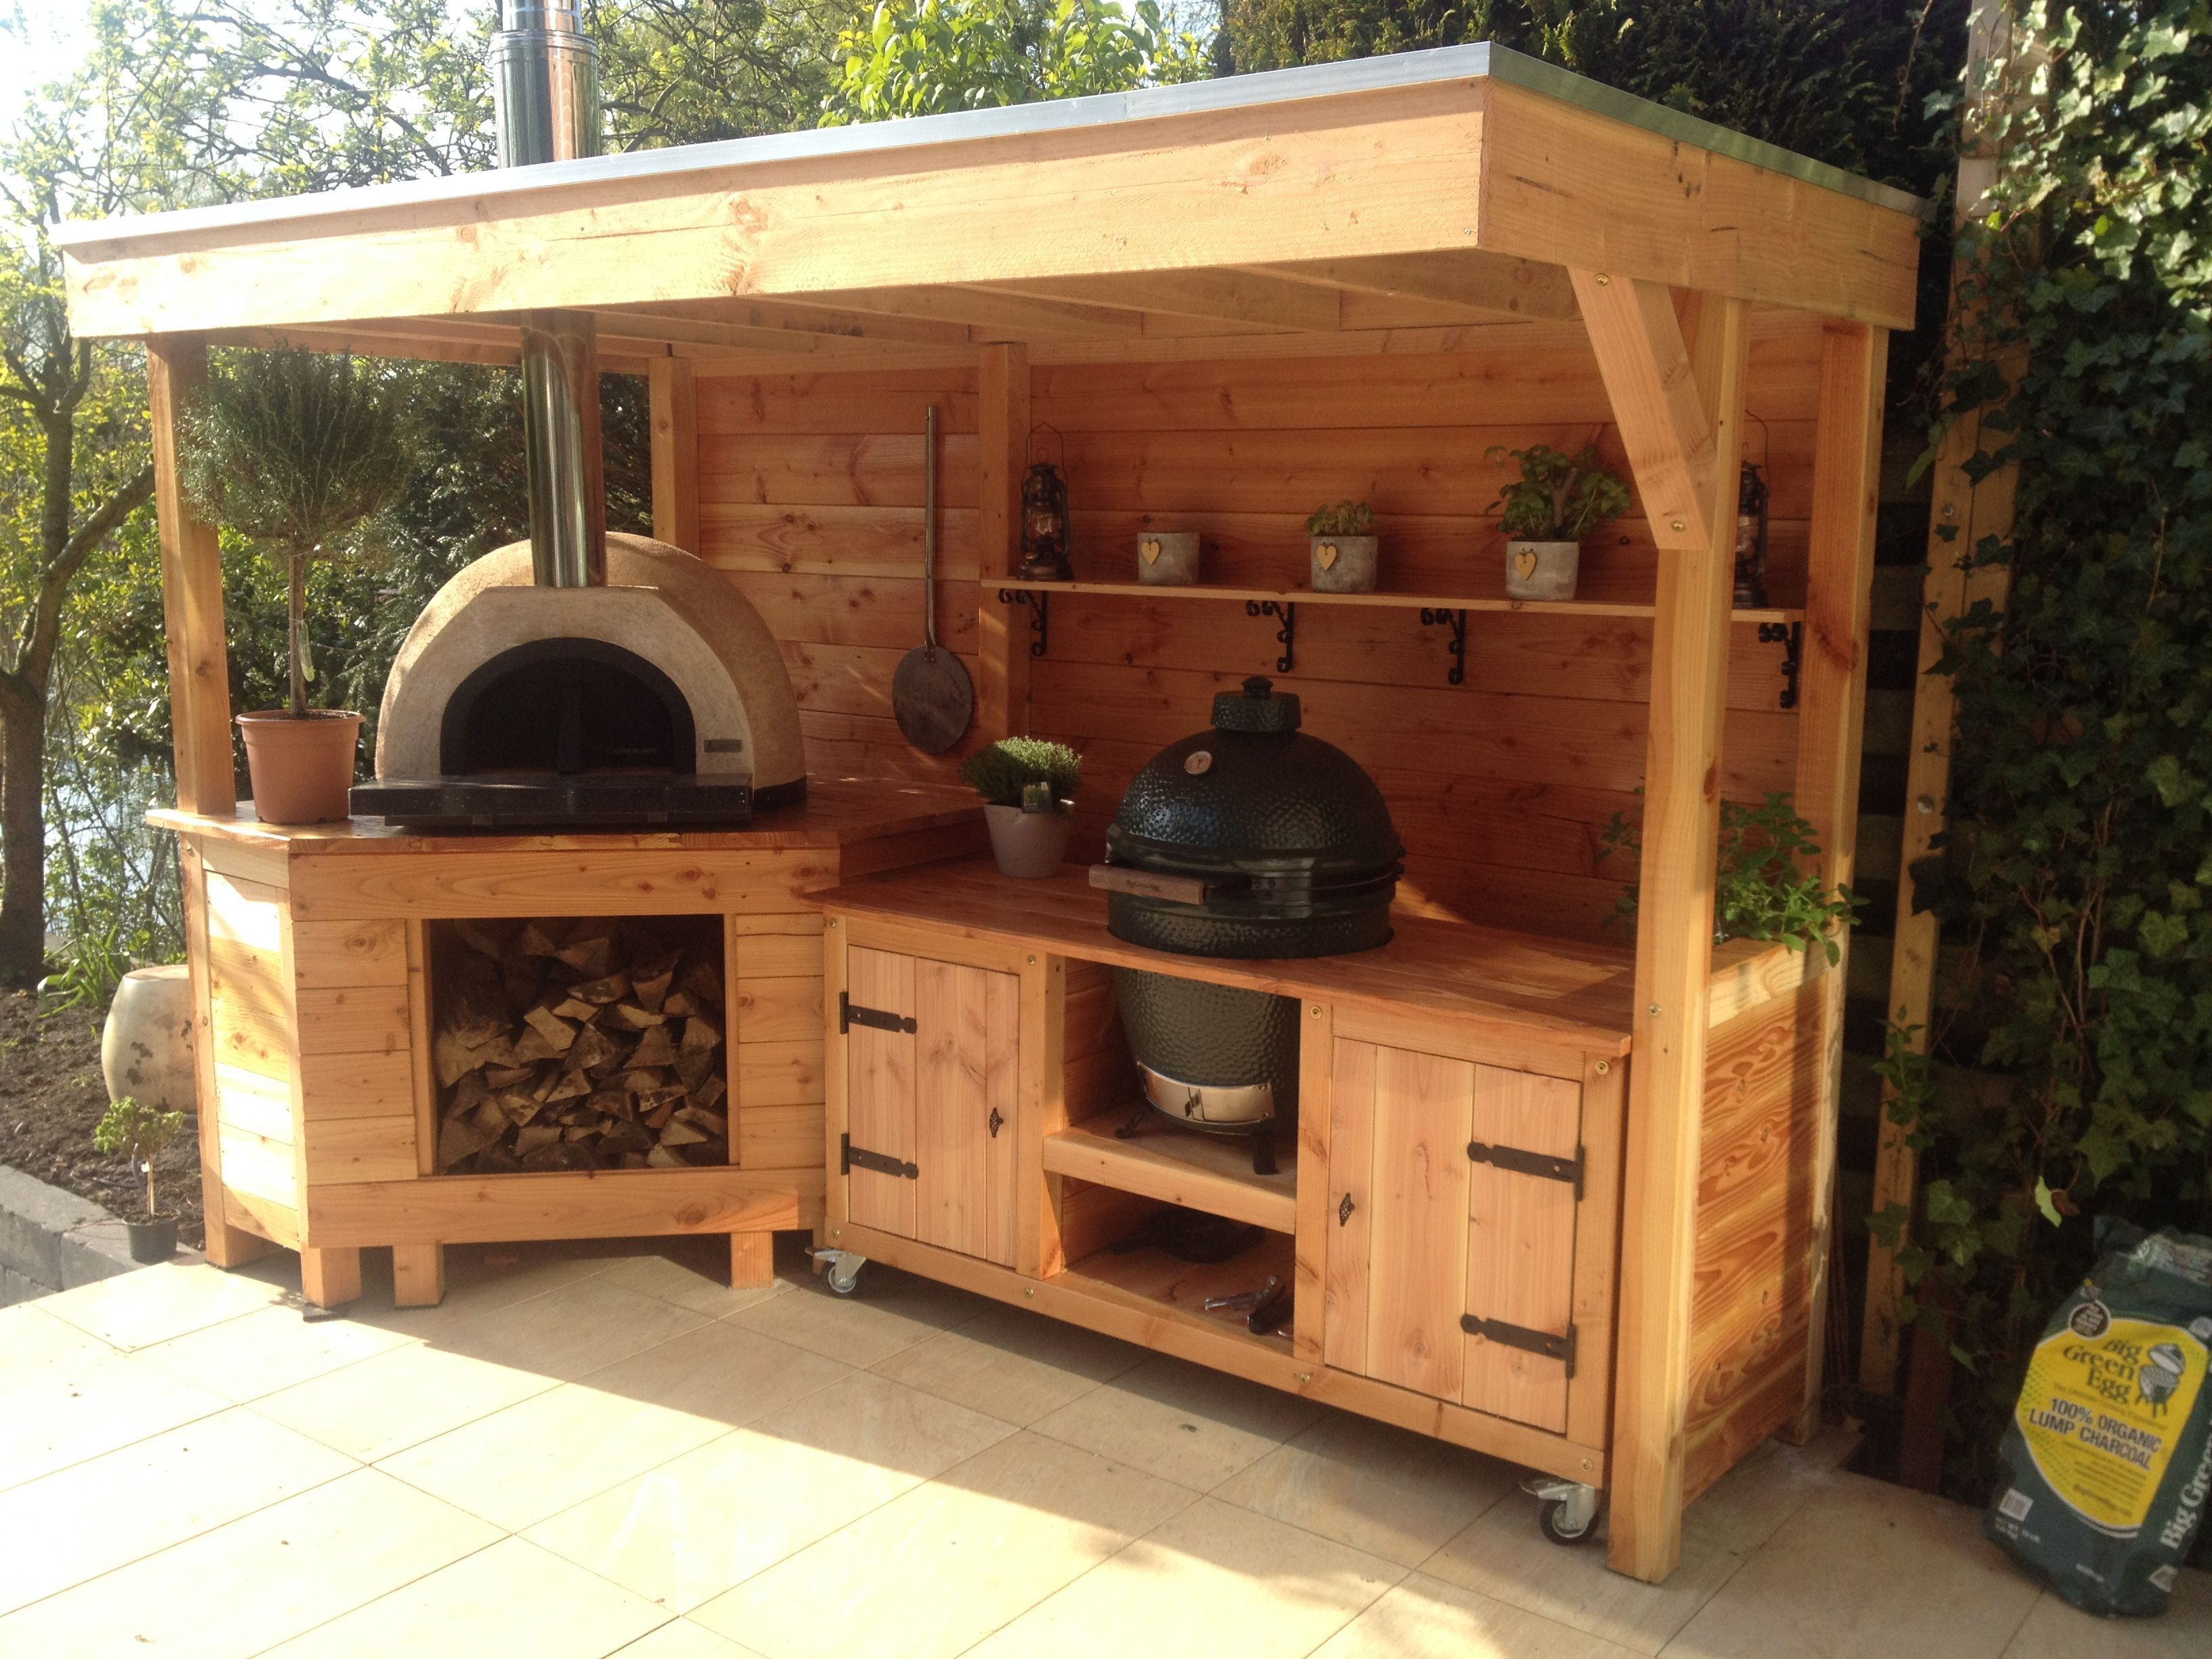 45 Awesome Outdoor Kitchen Ideas And Design Outdoor Living Blog